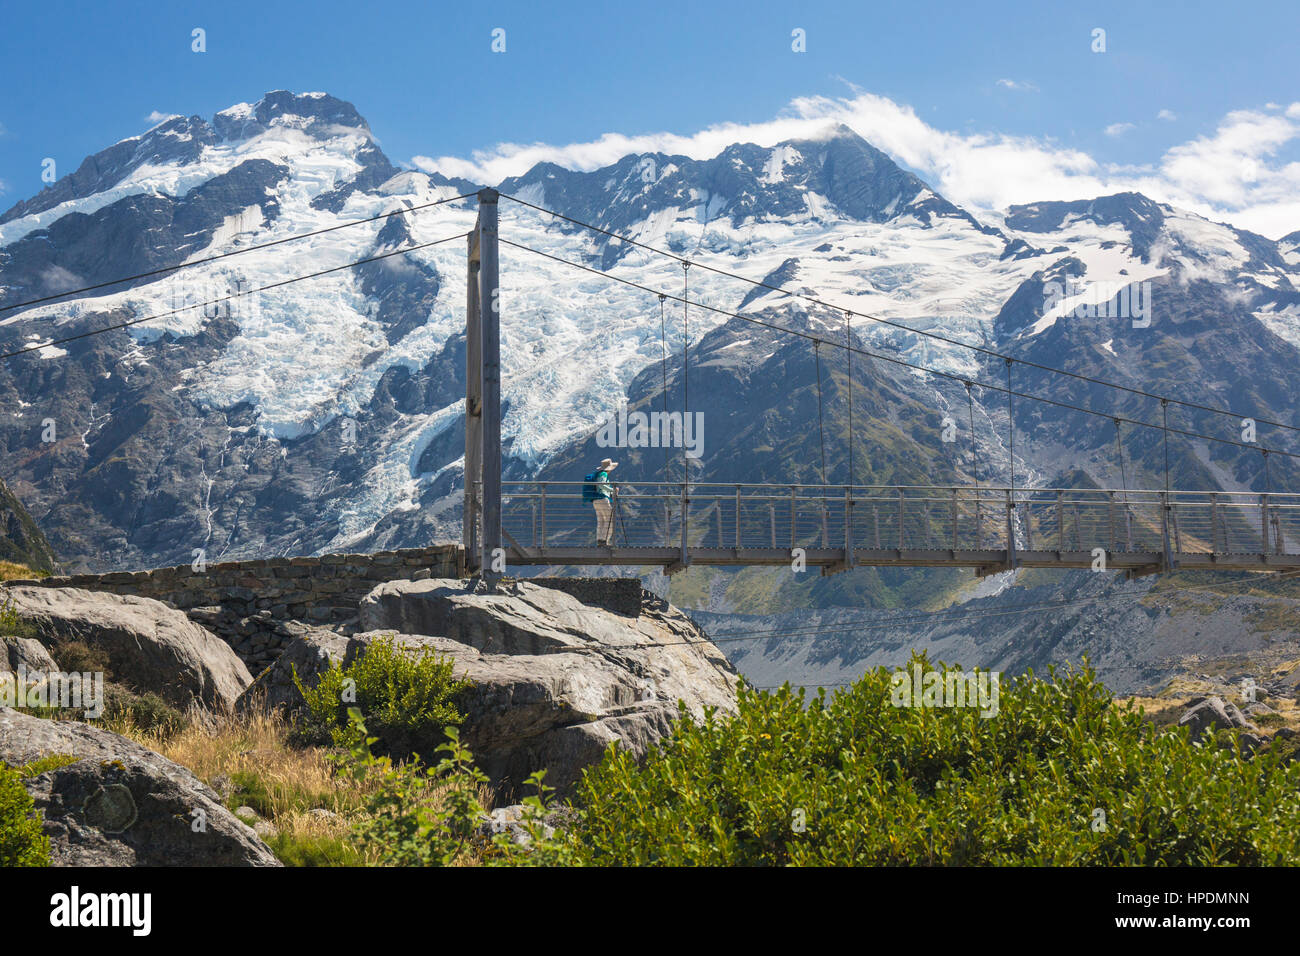 Aoraki/Mount Cook National Park, Canterbury, New Zealand. Hiker crossing suspension bridge on the Hooker Valley - Stock Image